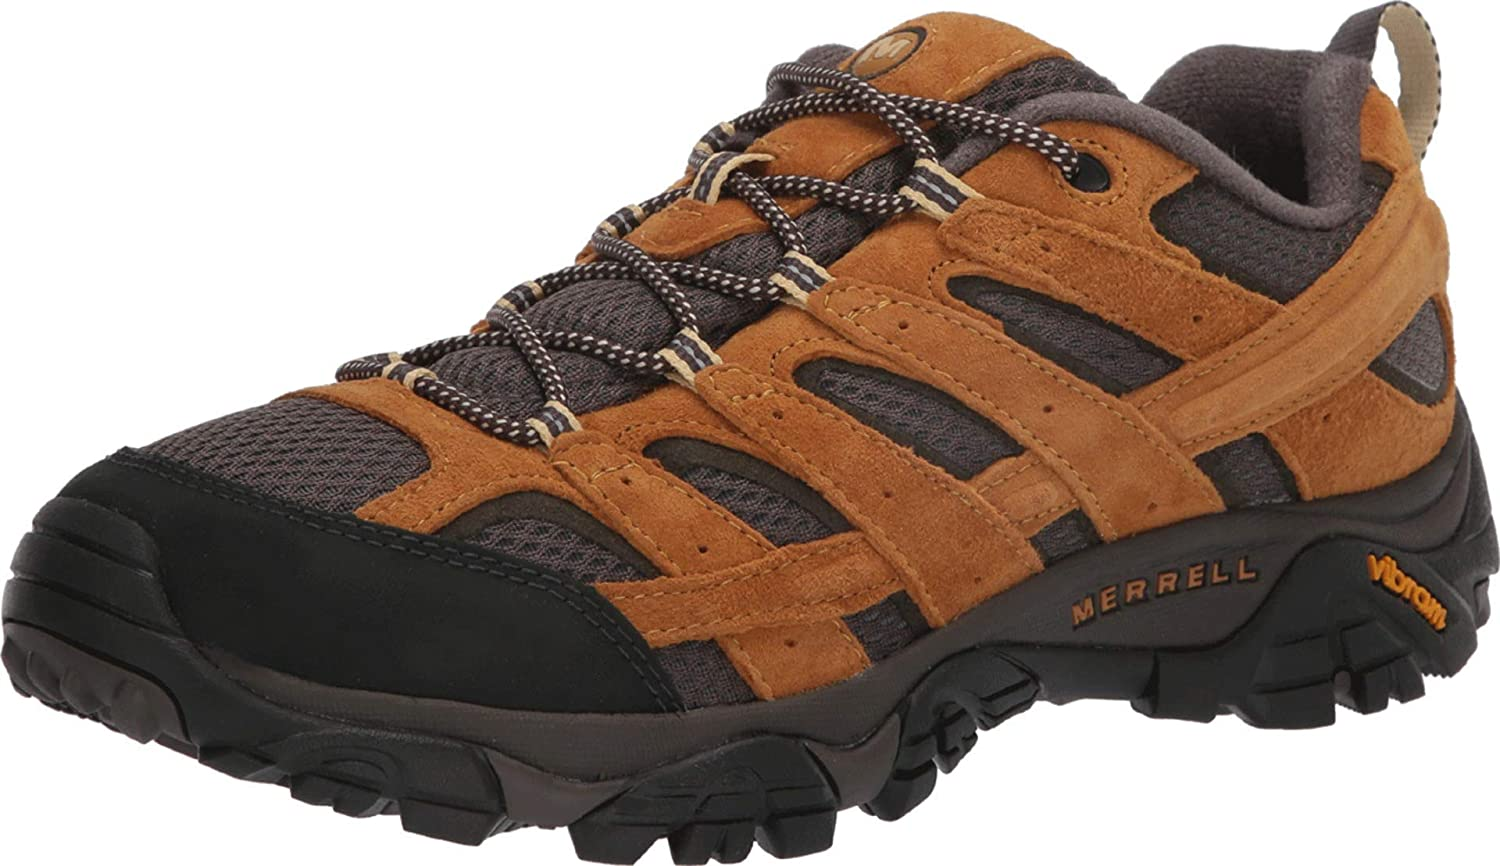 Best Disc Golf Shoes in 2021